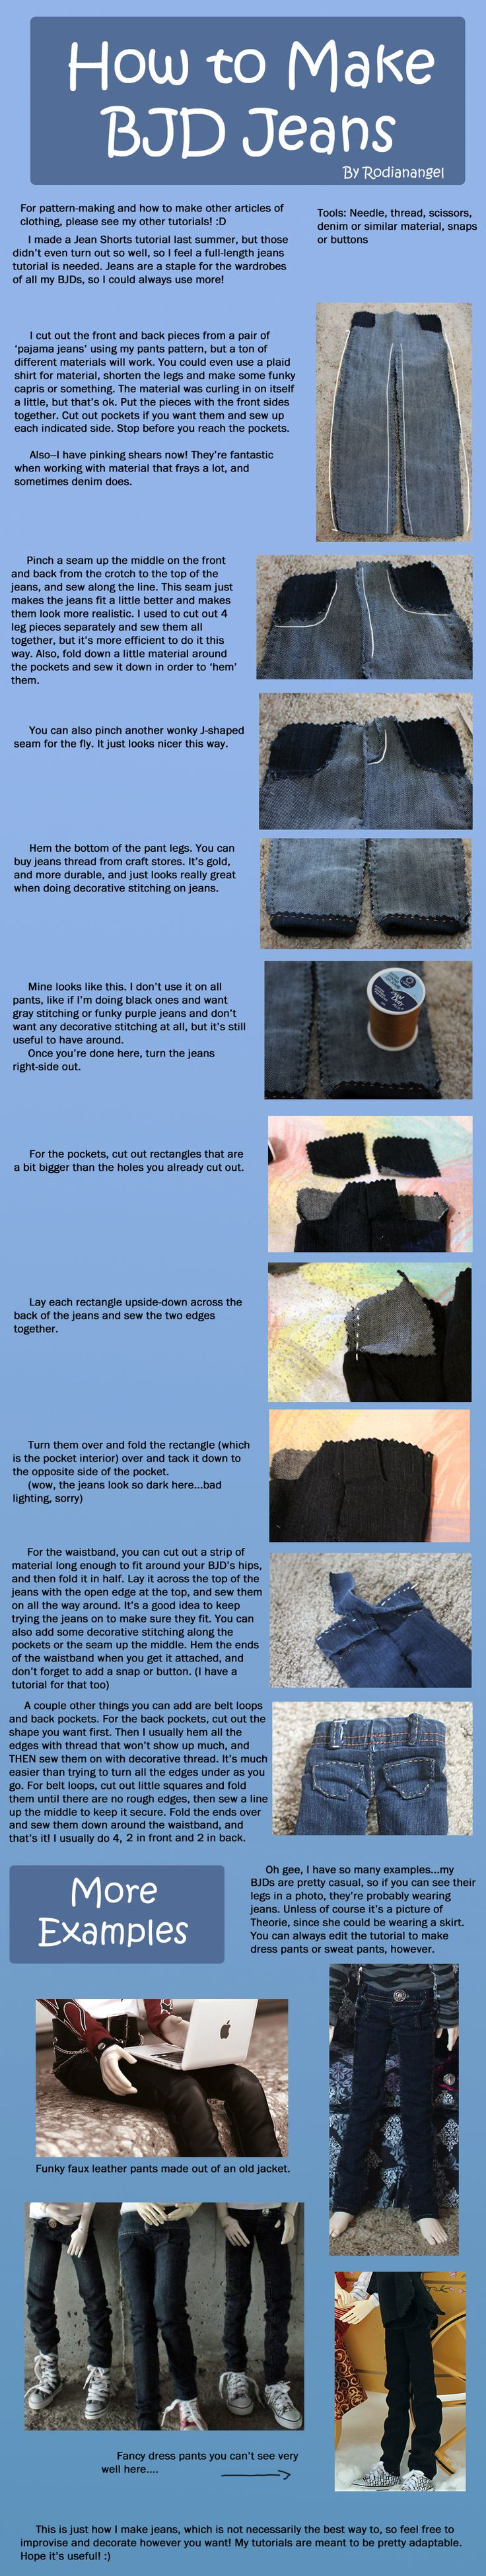 How to Make BJD Jeans by RodianAngel.deviantart.com on @deviantART